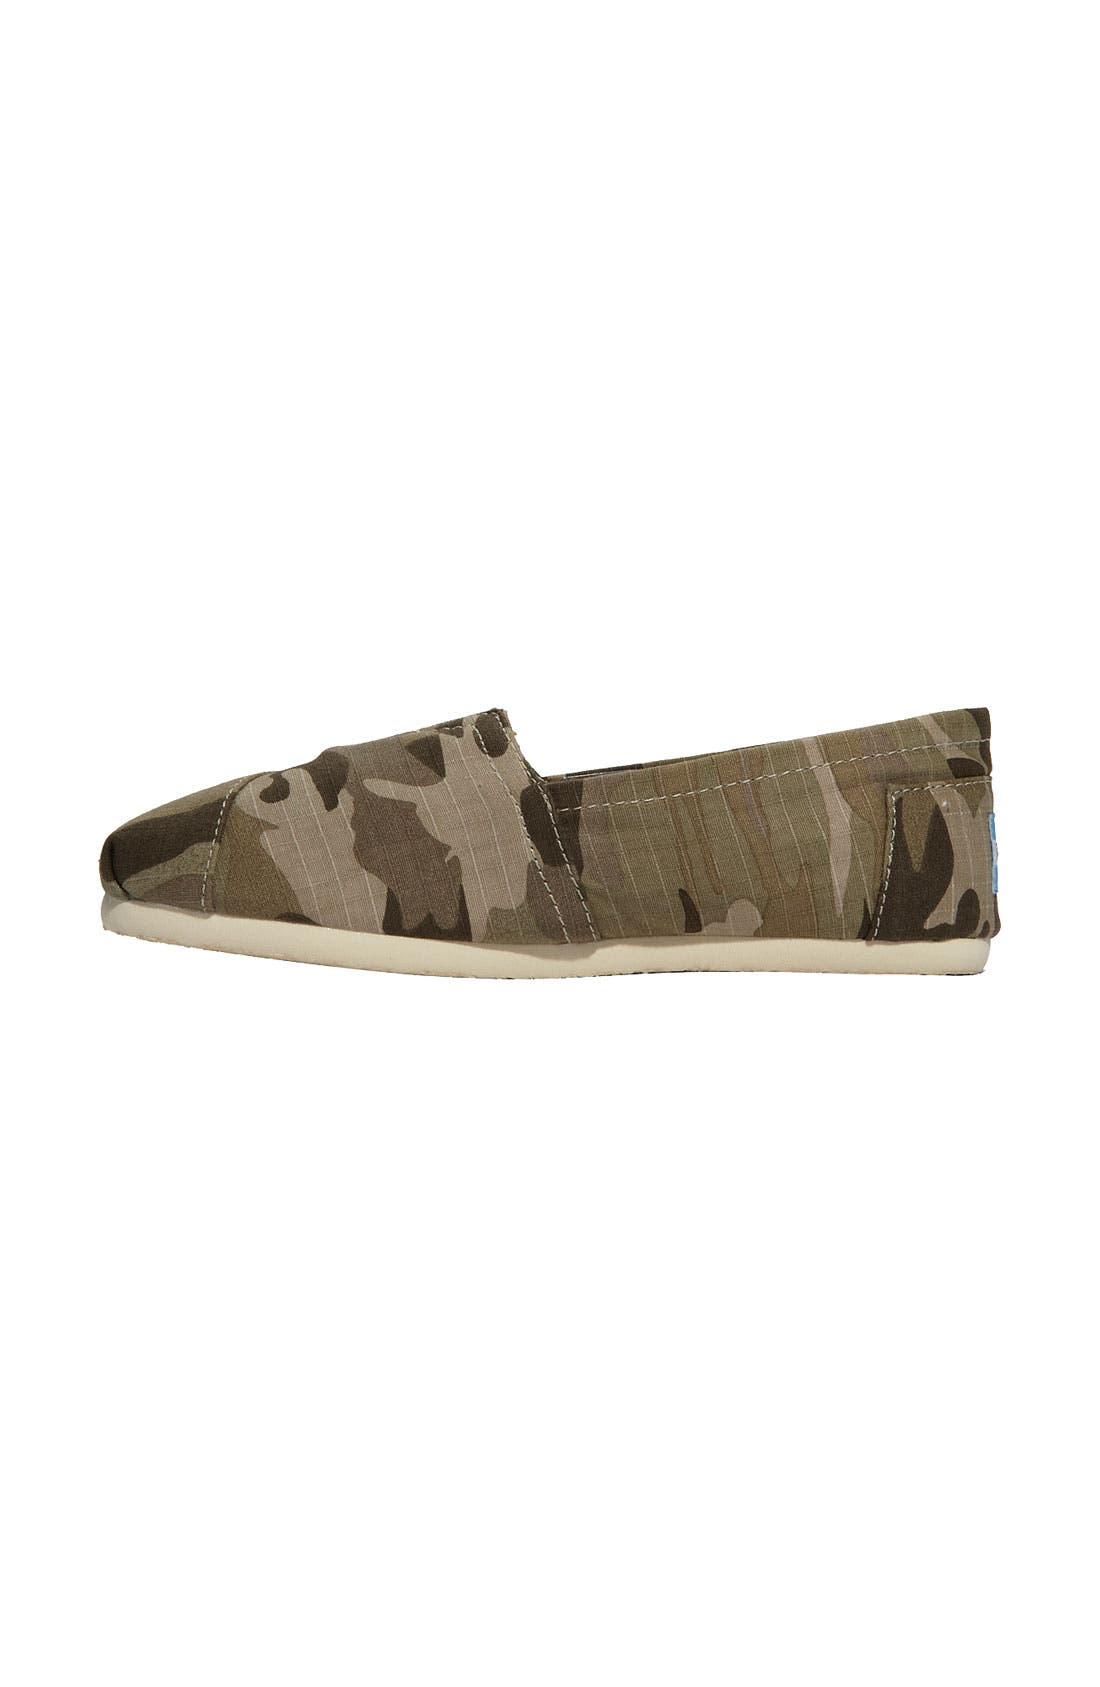 Alternate Image 2  - TOMS 'Classic - Camo' Slip-On (Women) (Nordstrom Exclusive)